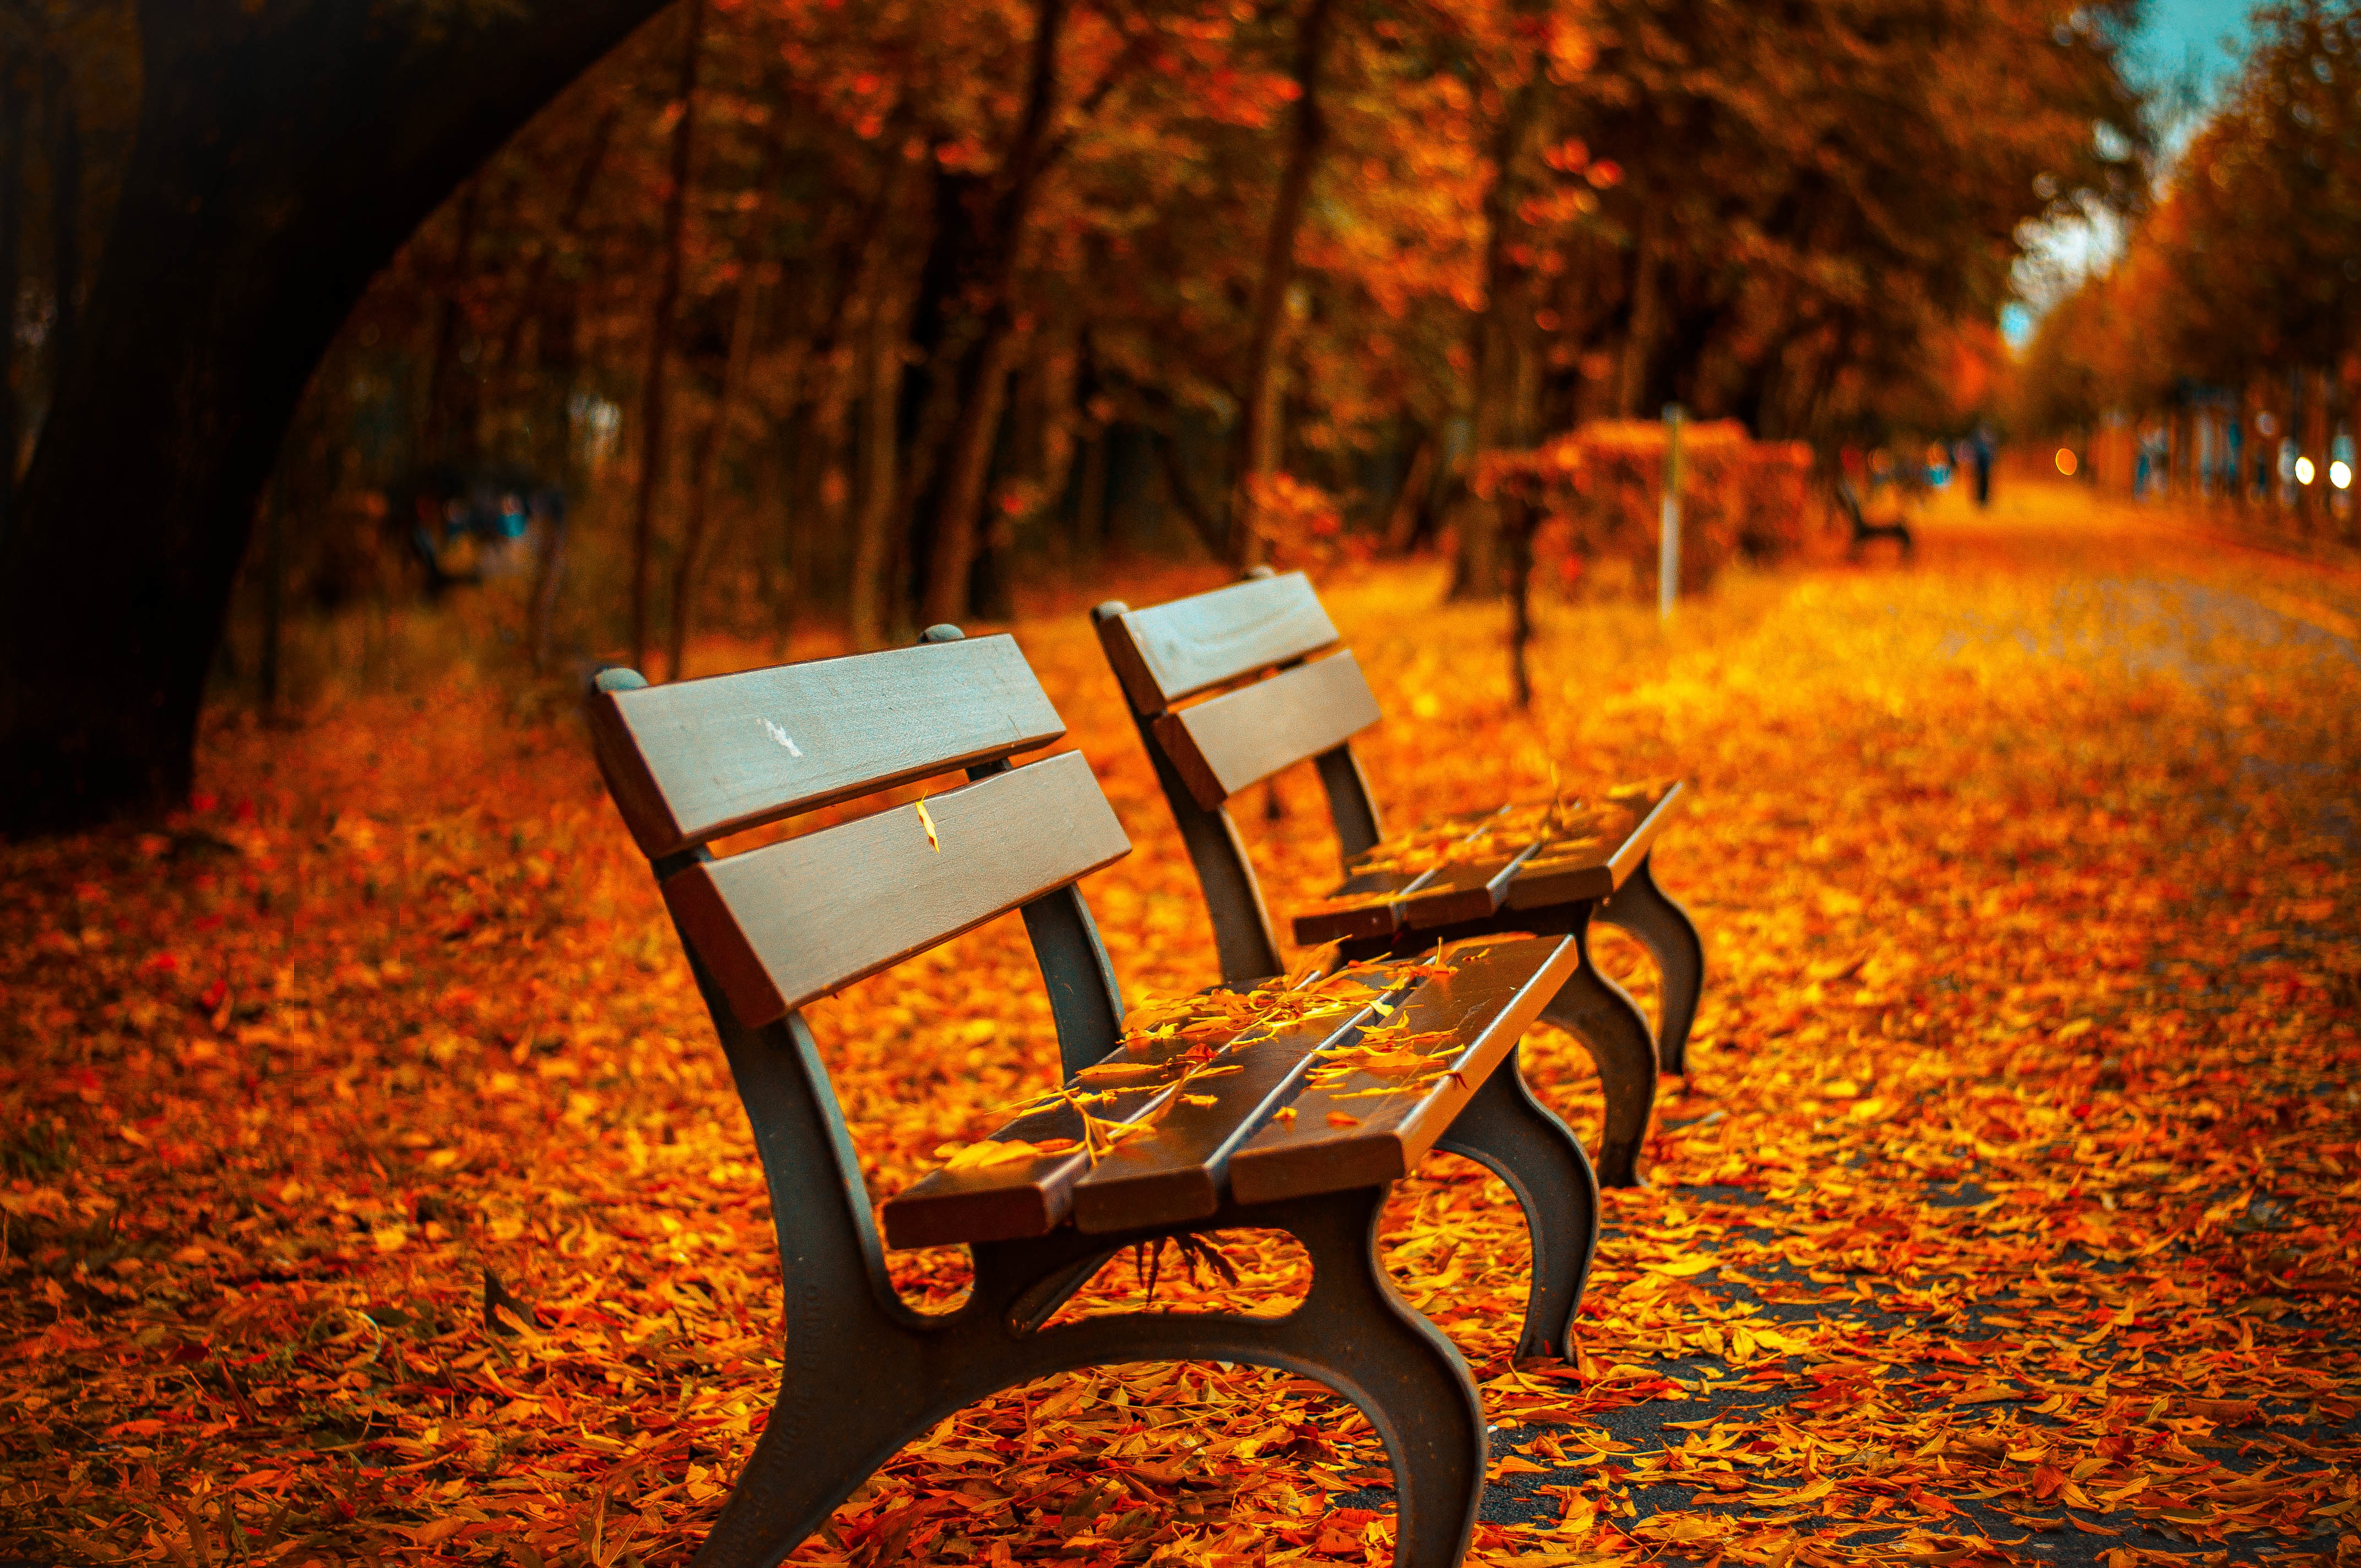 Autumn in the park, seat, dry leaves, leaves, yellow, fallen leaves, autumn, late autumn, park, ojas, banking